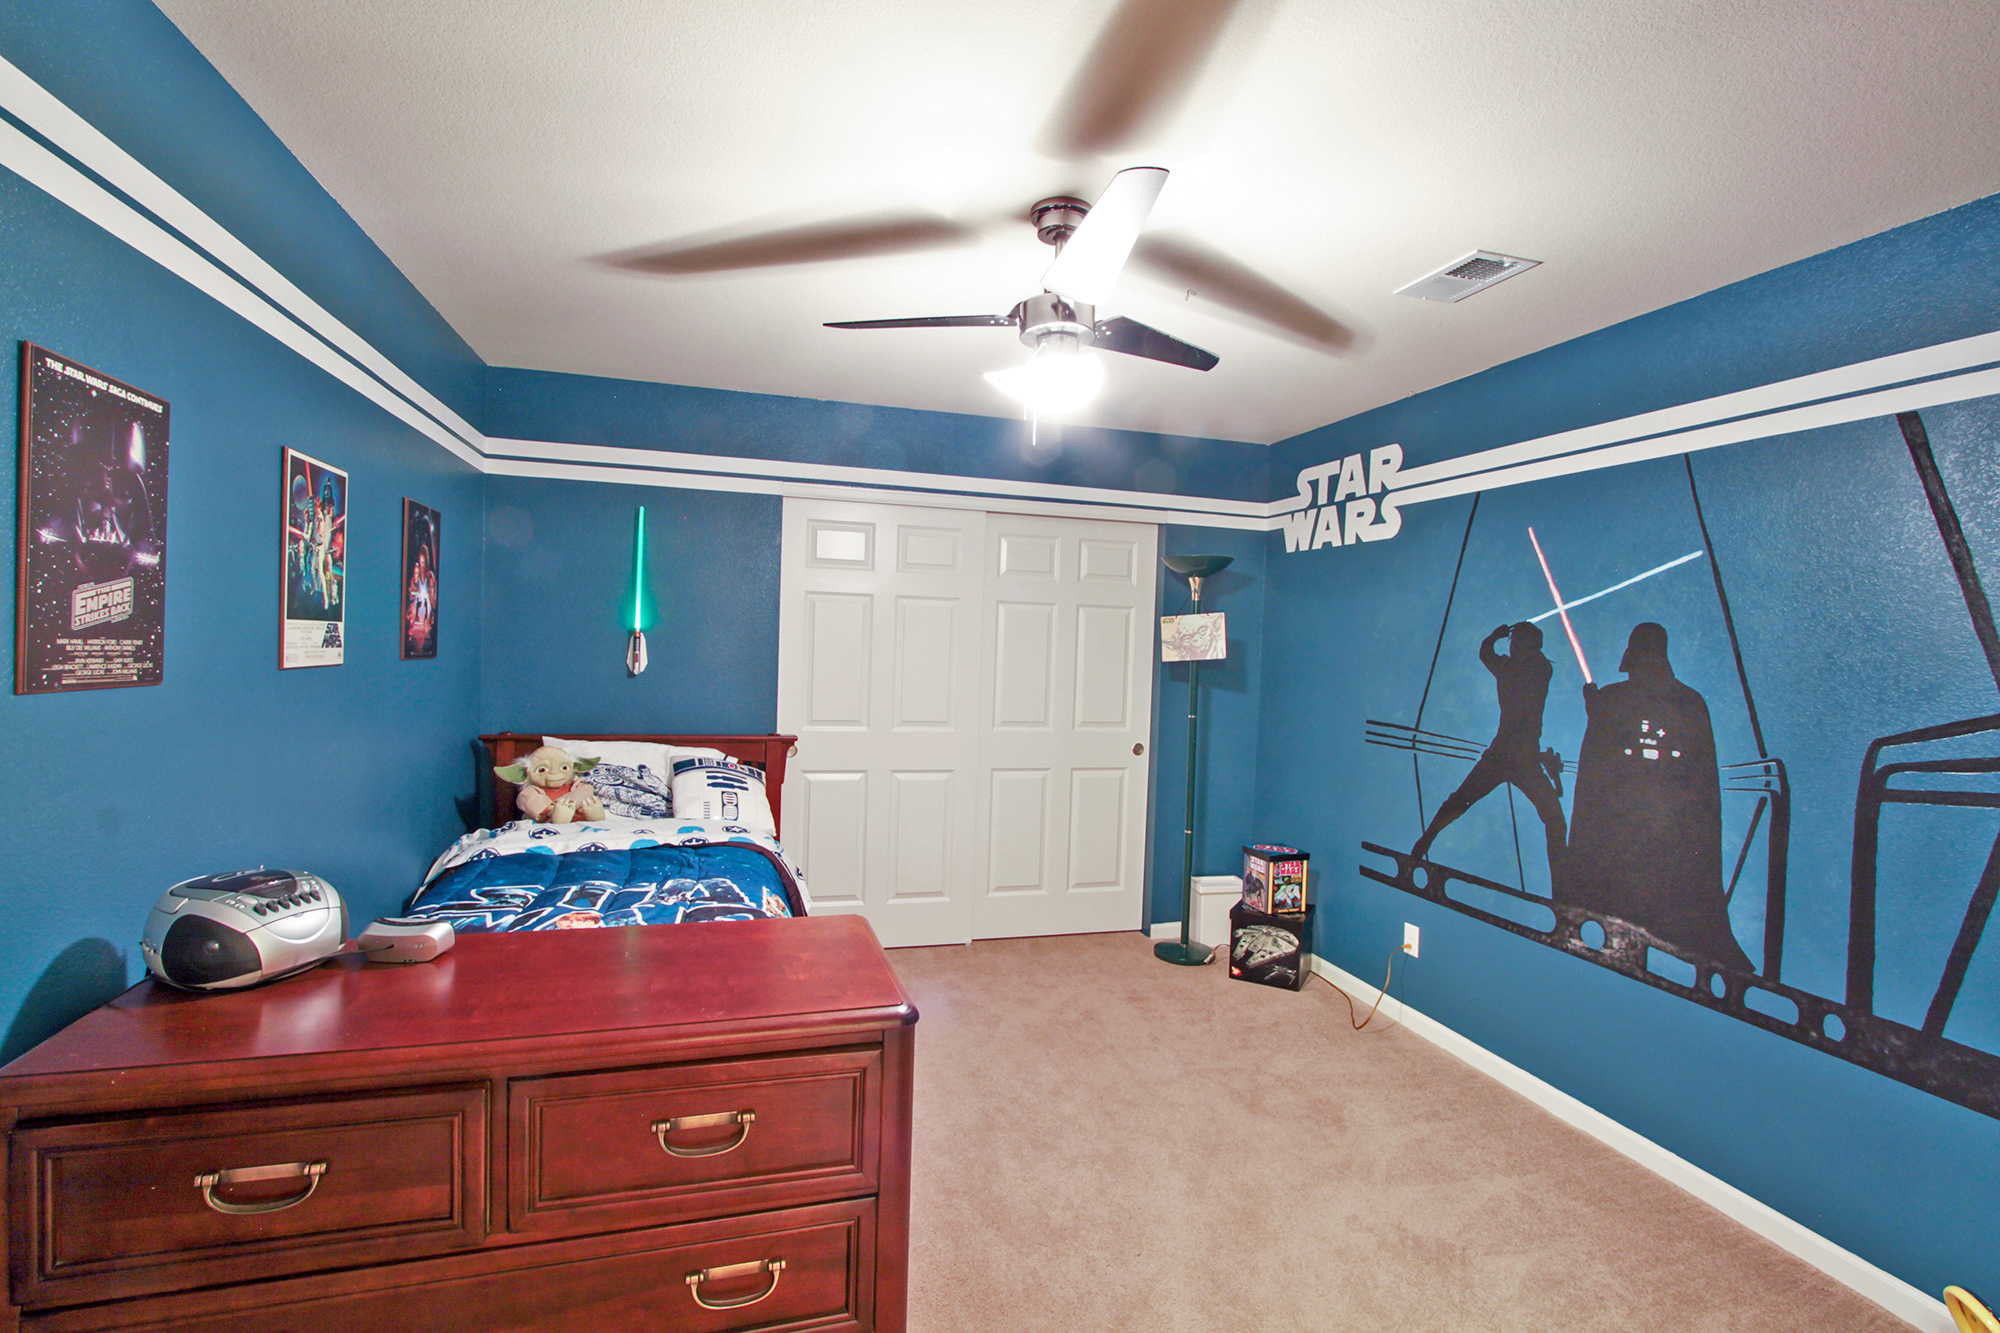 To get your kids bedroom looking like this, all you need is a little bit of paint and some vinyl stickers.